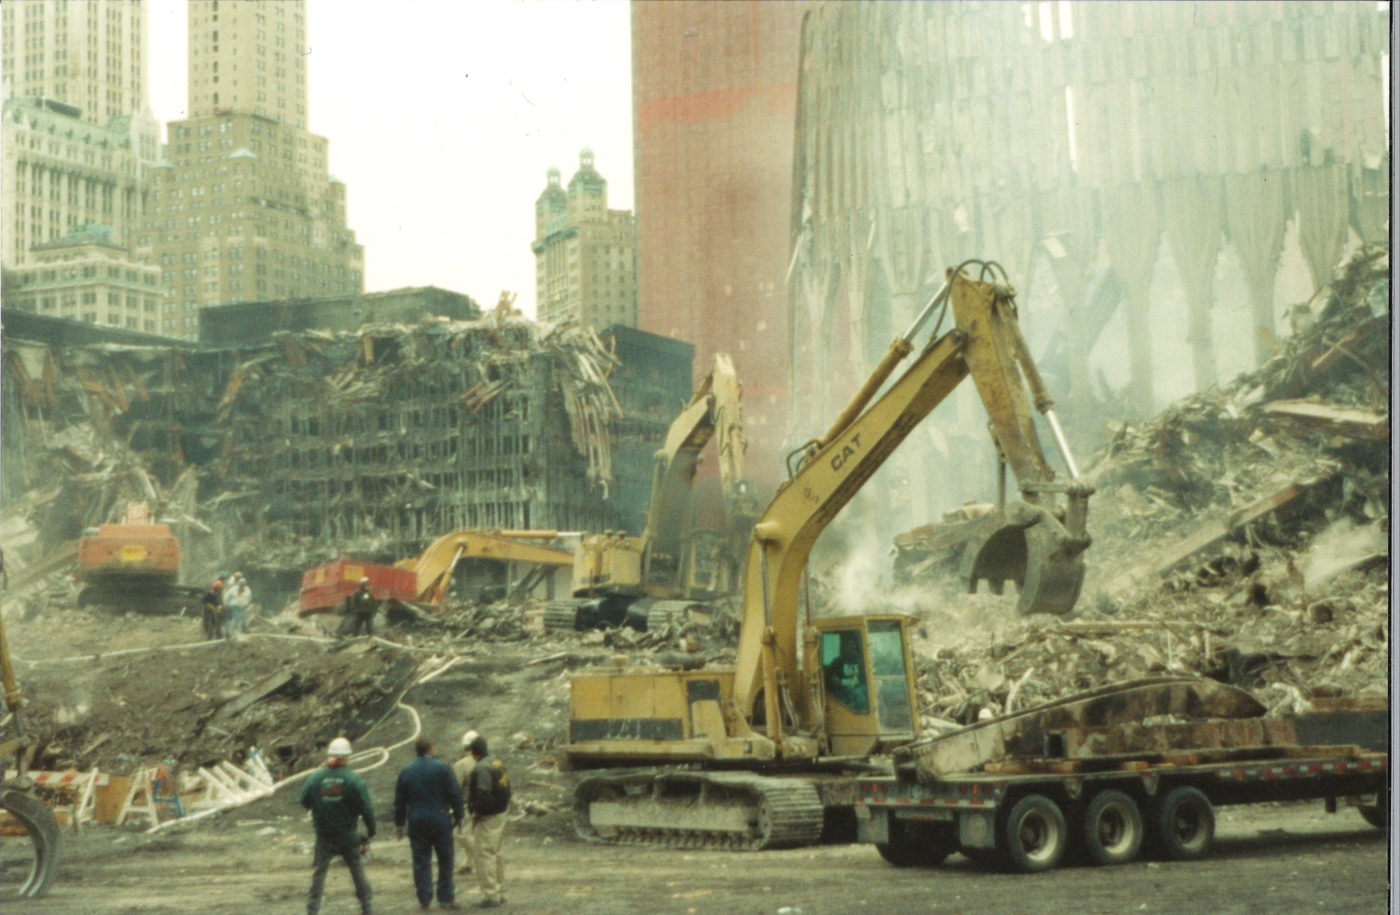 Worrkers on the Pile with destroyed WTC Tower and WTC 5 in background